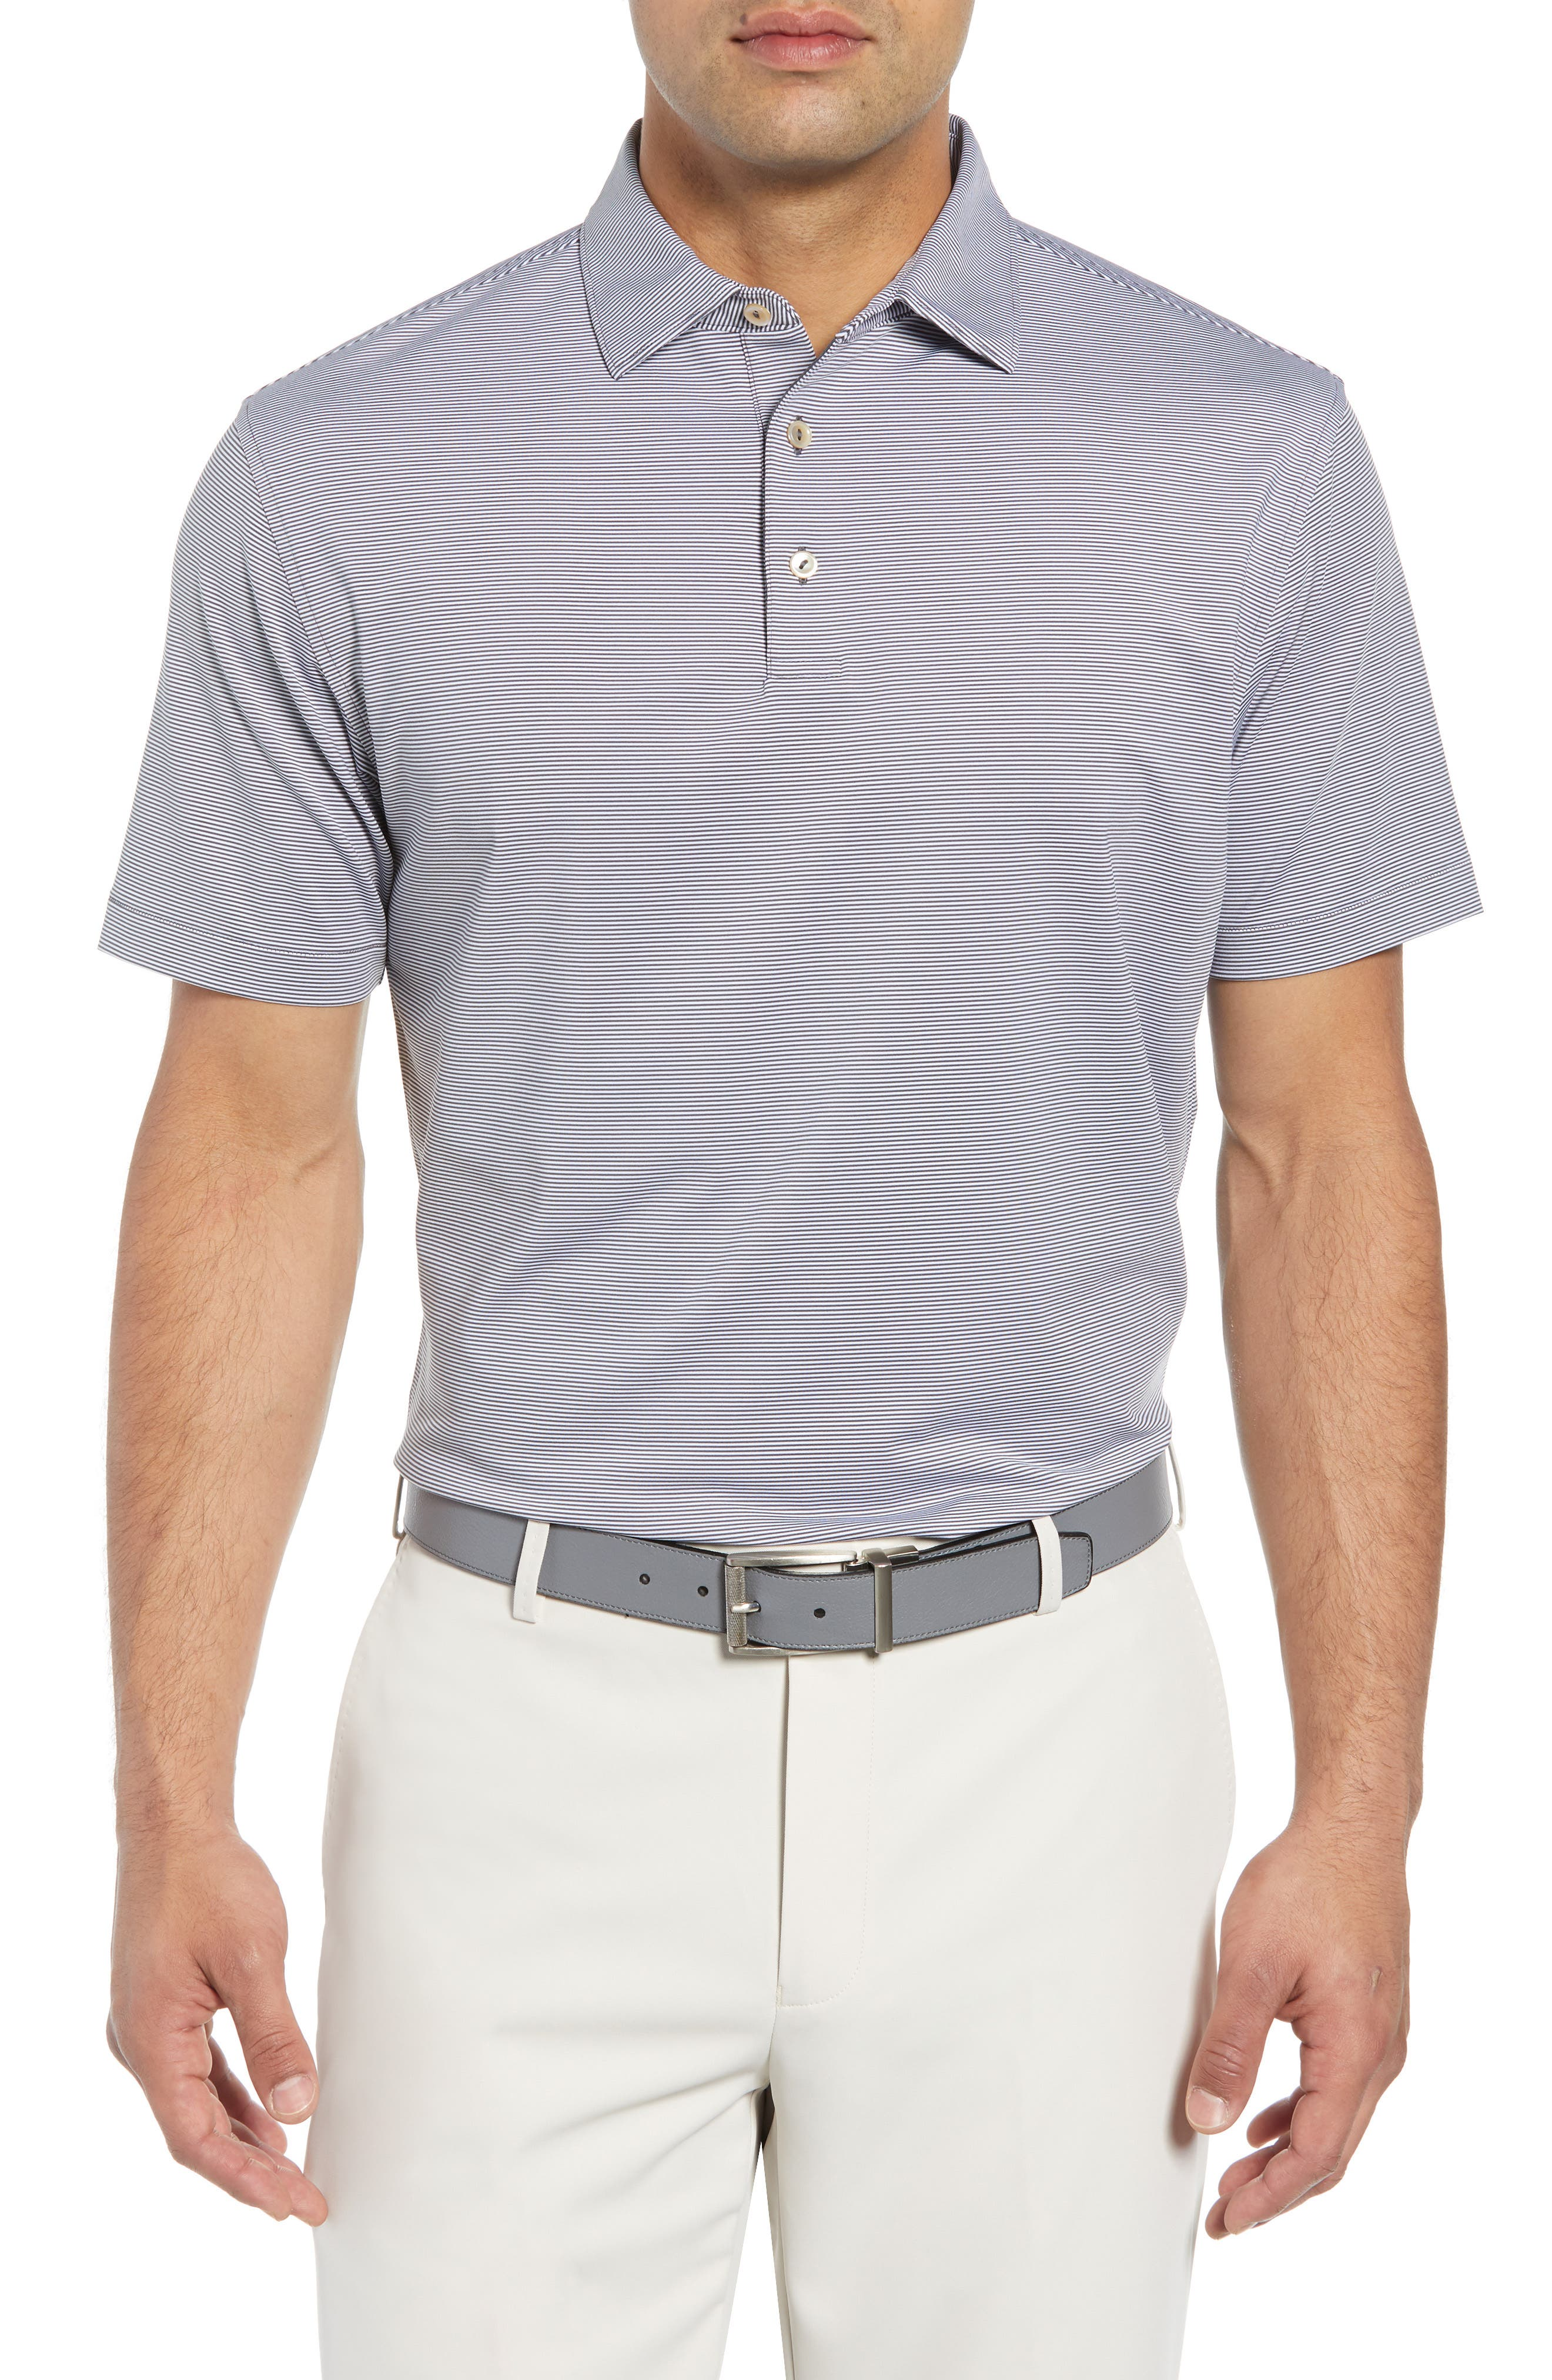 Jubilee Stripe Stretch Jersey Performance Polo,                             Main thumbnail 1, color,                             020